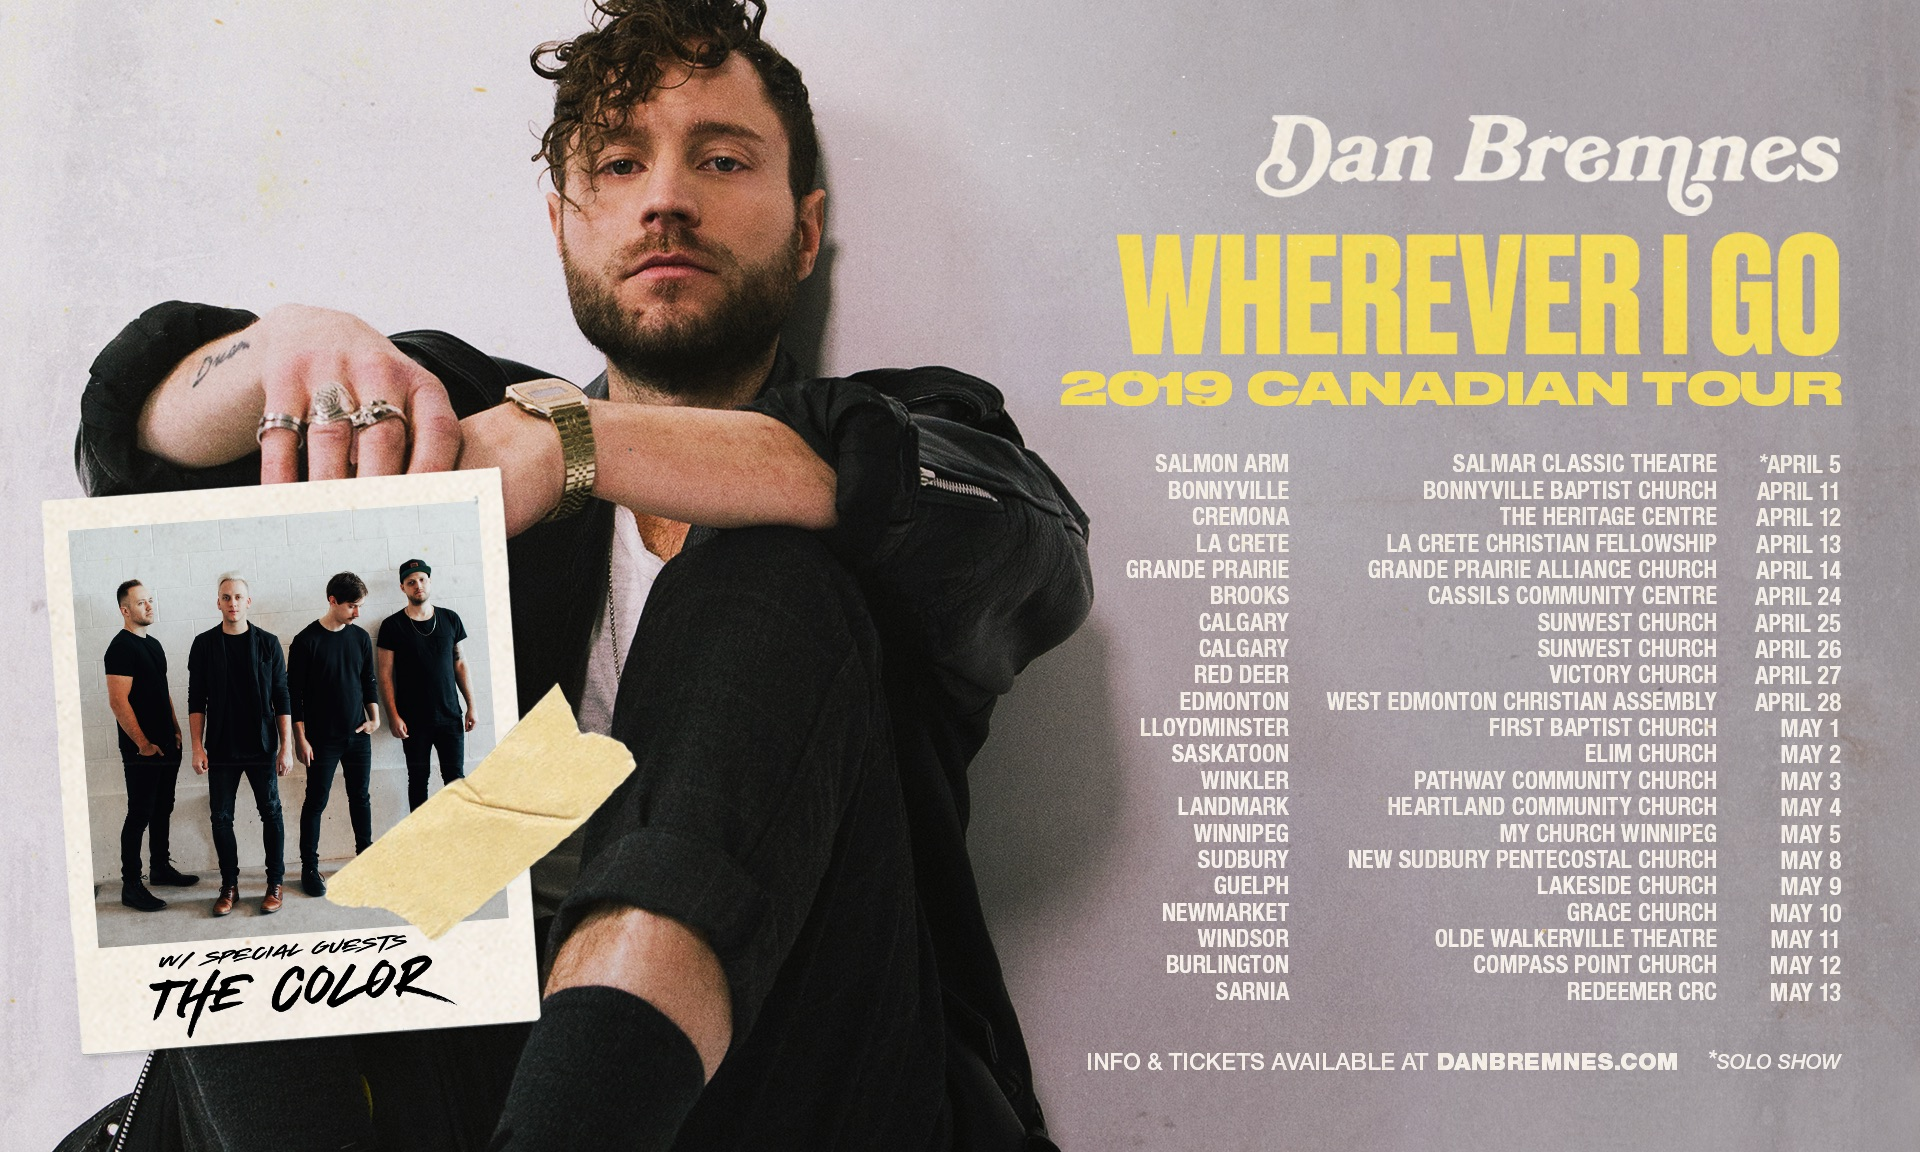 Tickets for Dan Bremnes, Wherever I Go Tour with The Color in Brooks from BuzzTix